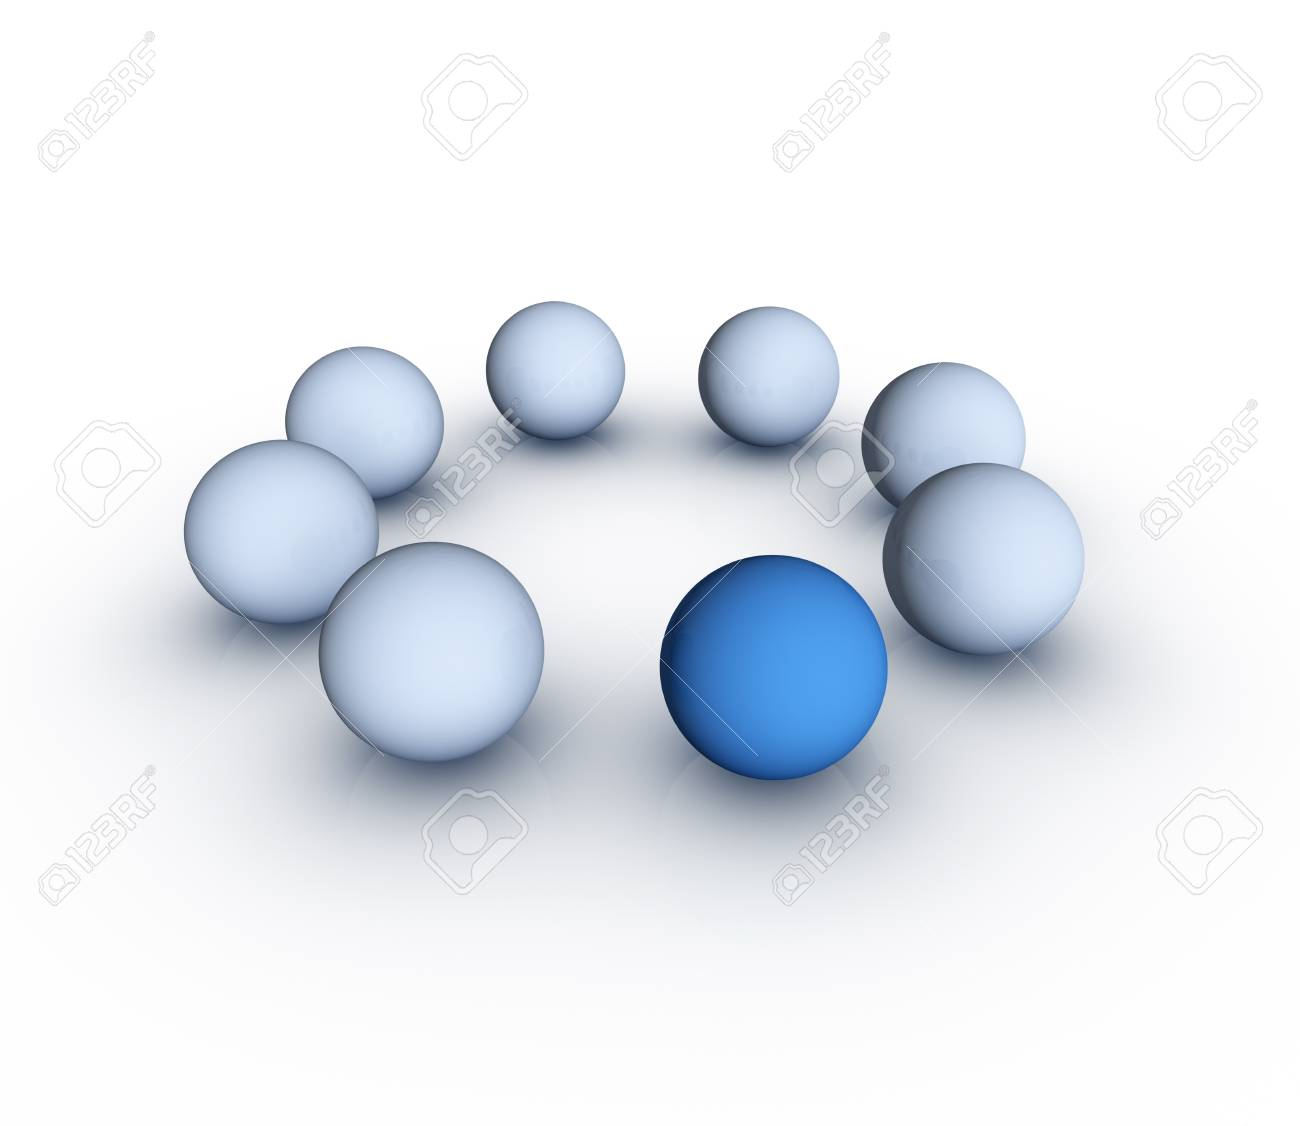 One Different Element  Standing Out From The Crowd Concept Stock Photo - 12793957